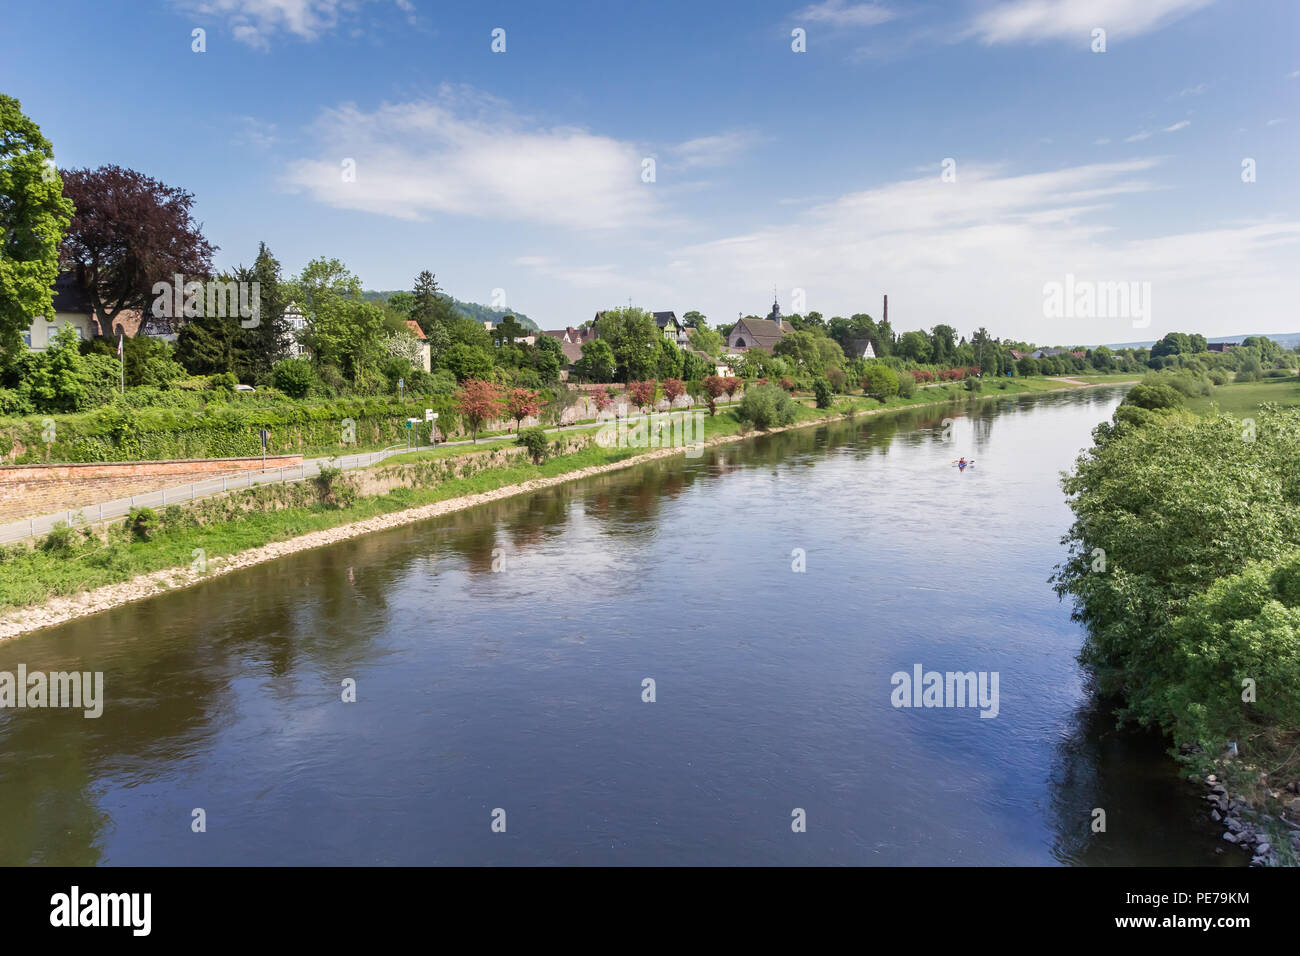 Weser river and historic city Hoster, Germany Stock Photo